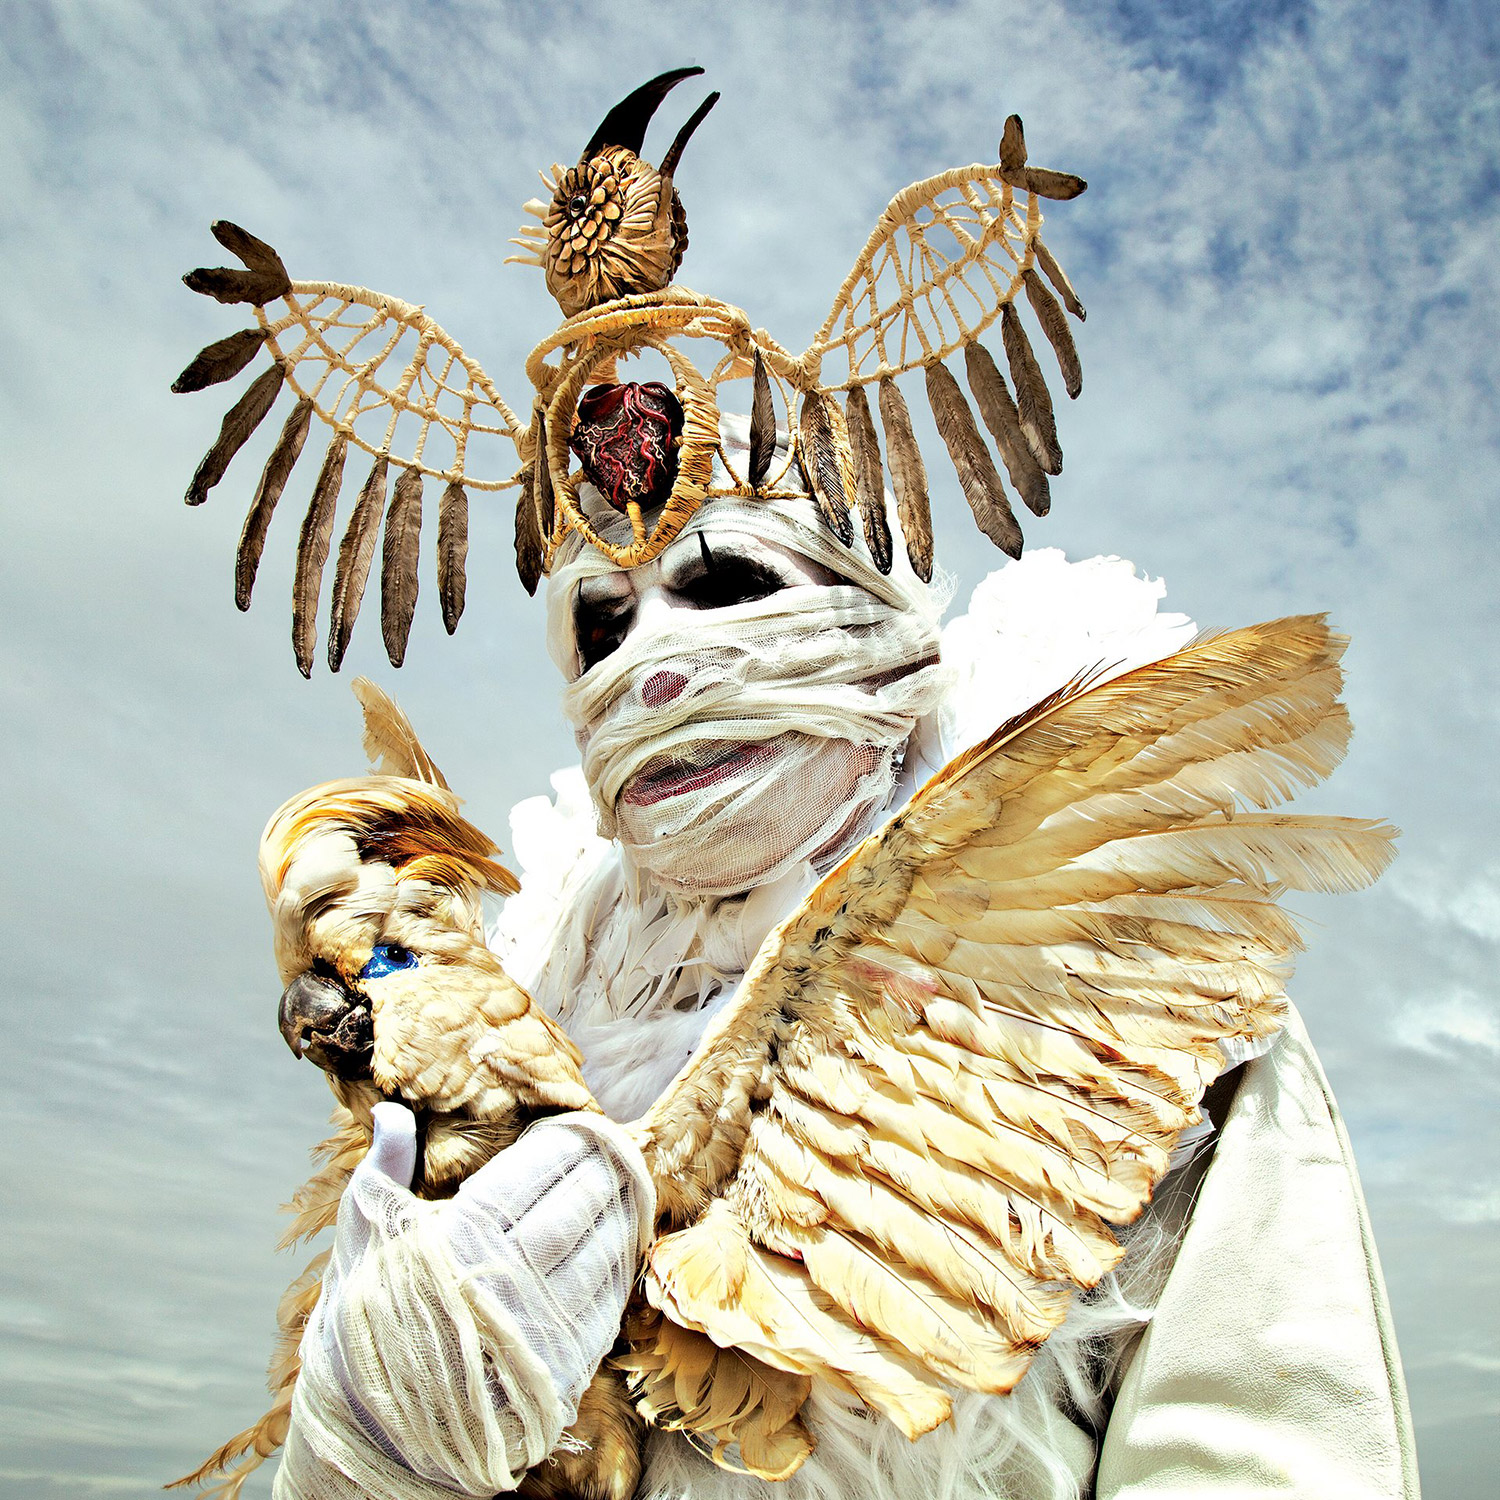 Mothmeister - white crowned figure with bird